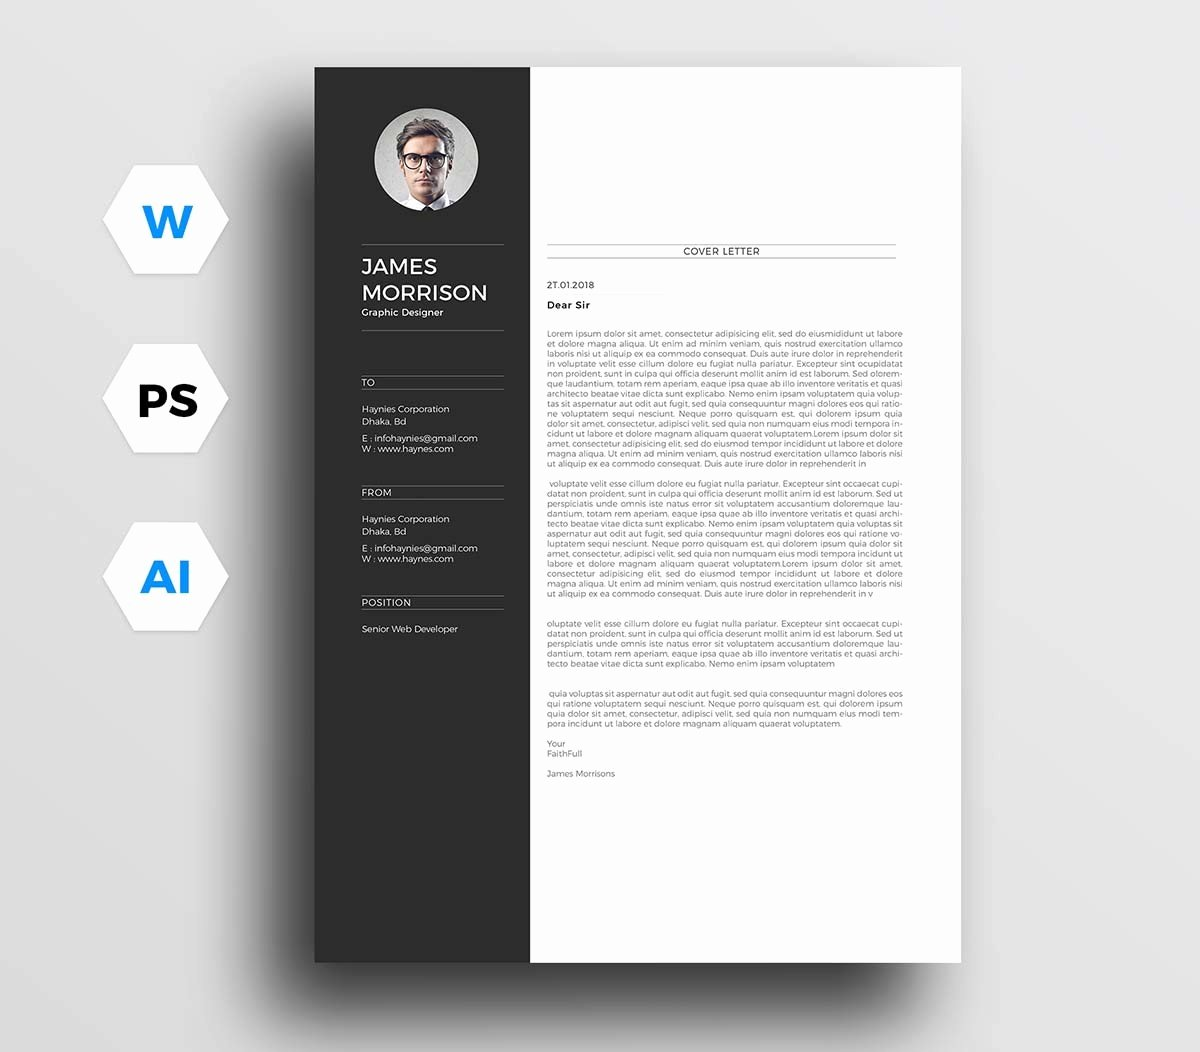 Letter Templates for Word Unique 12 Cover Letter Templates for Word [best Free Downloadable